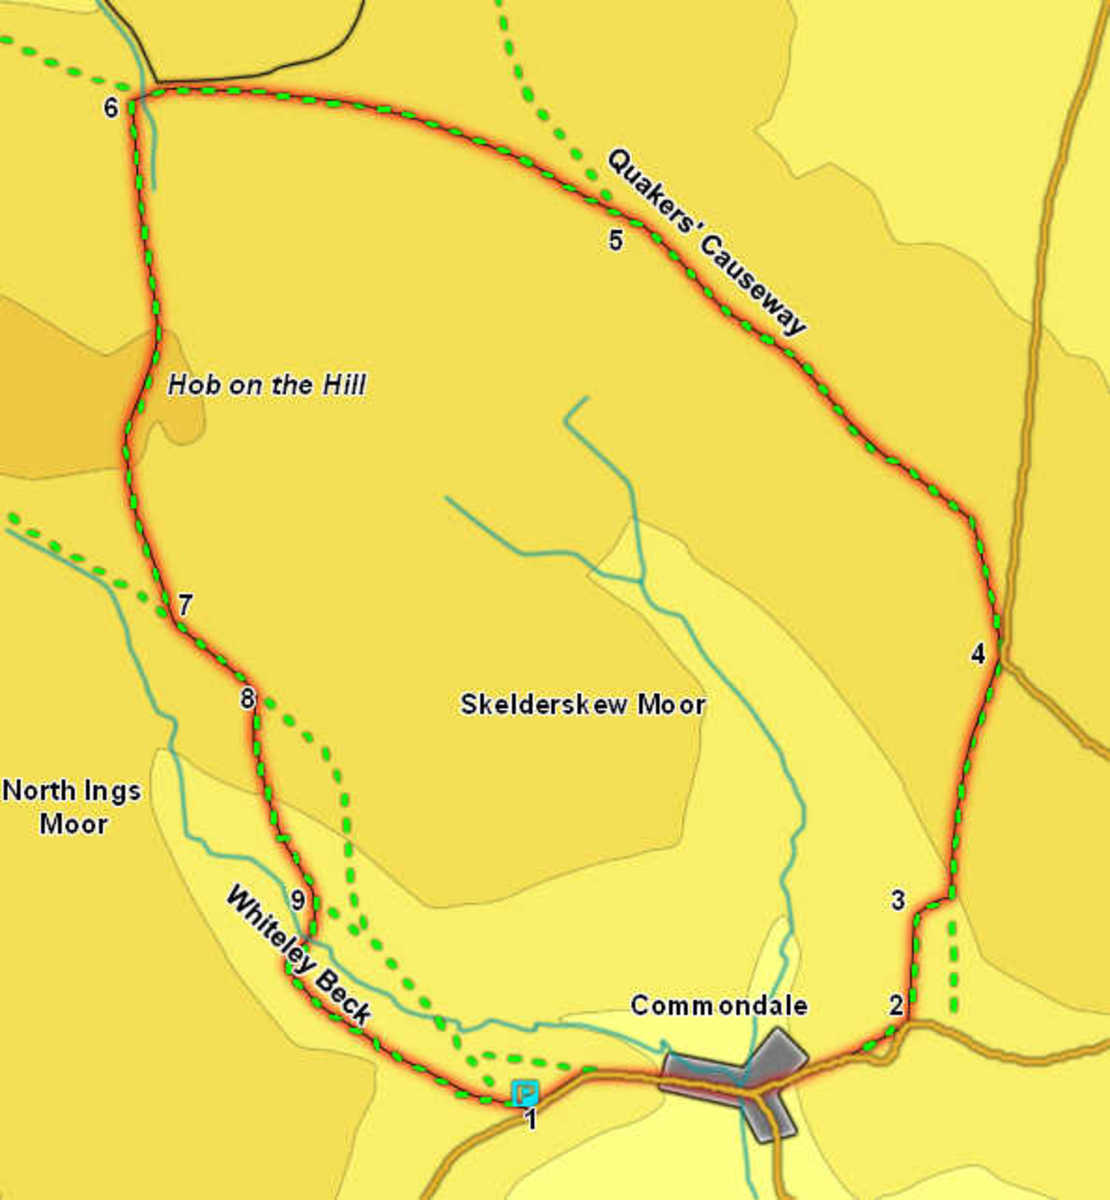 Commondale Moor walk via the Quakers Causeway, Hob On The Hill and Hob Cross are ancient waymarkers that have guided wayfarers back through pre-history